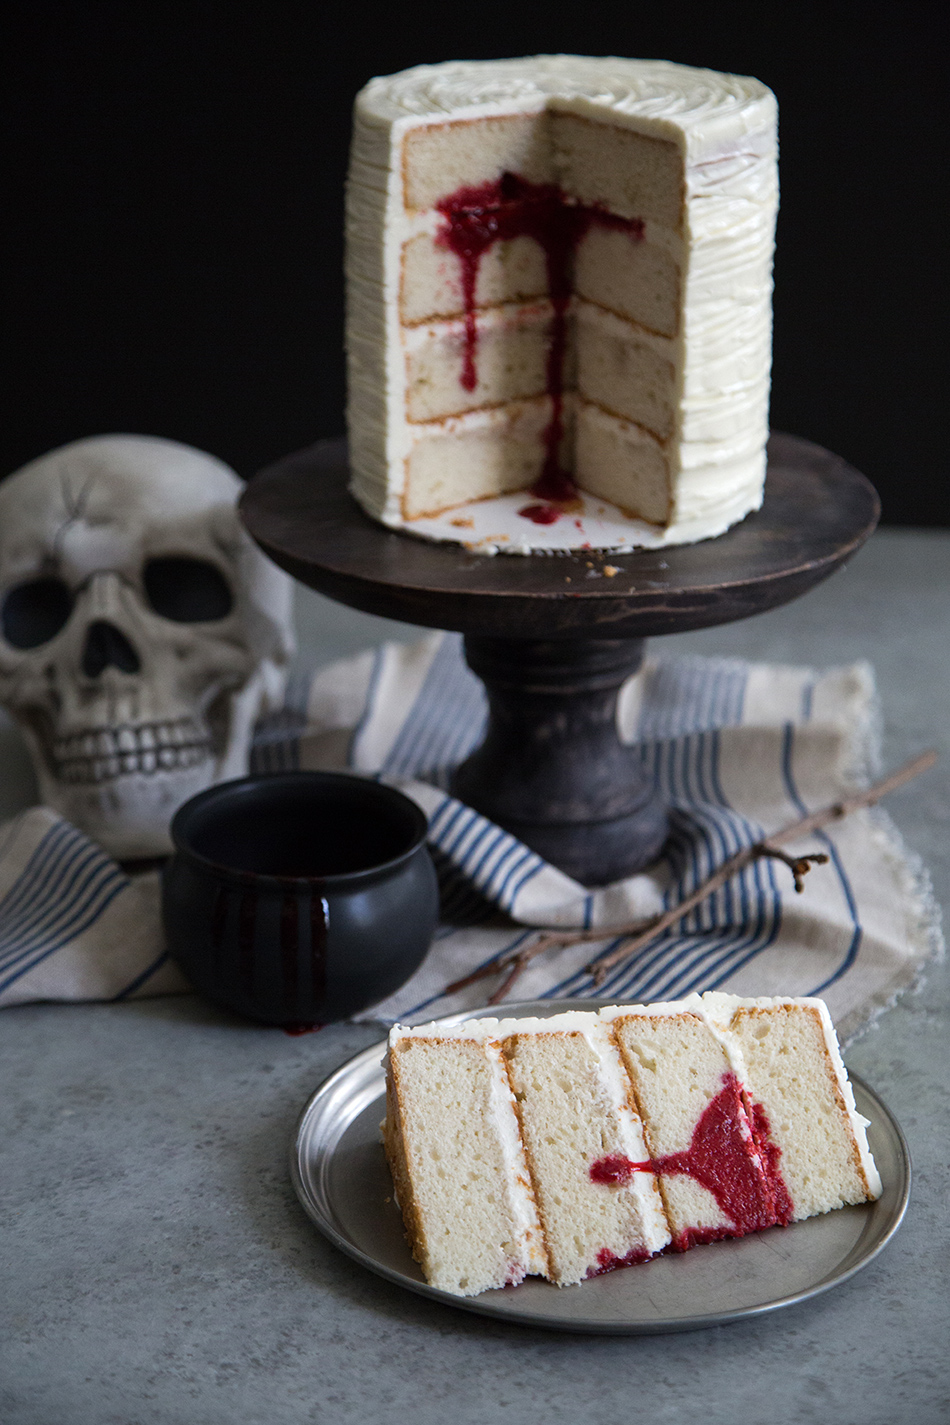 Surprise Bloody Cake (Vanilla Cake wtih Raspberry)- The Little Epicurean